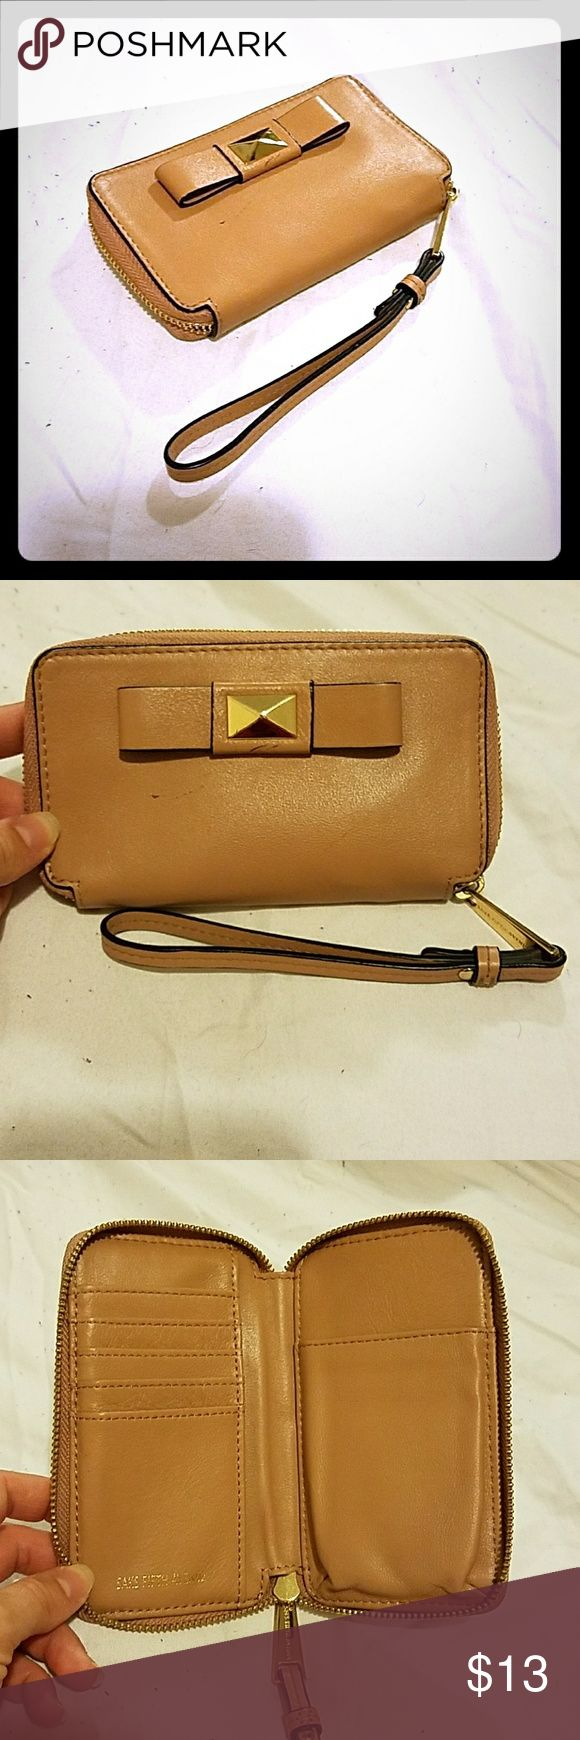 ❤FLASH SALE❤Saks Fifth Avenue Wristlet Beige leather Saks Fifth Avenue Wristlet wallet.  I purchased it from Saks last year. It's in good condition except 2 minor scratches  (see pictures). LIKE THE LOOK? TUNIC and MK JEANS AVAILABLE! CHECK OUT MY OTHER LISTINGS. Saks Fifth Avenue Accessories